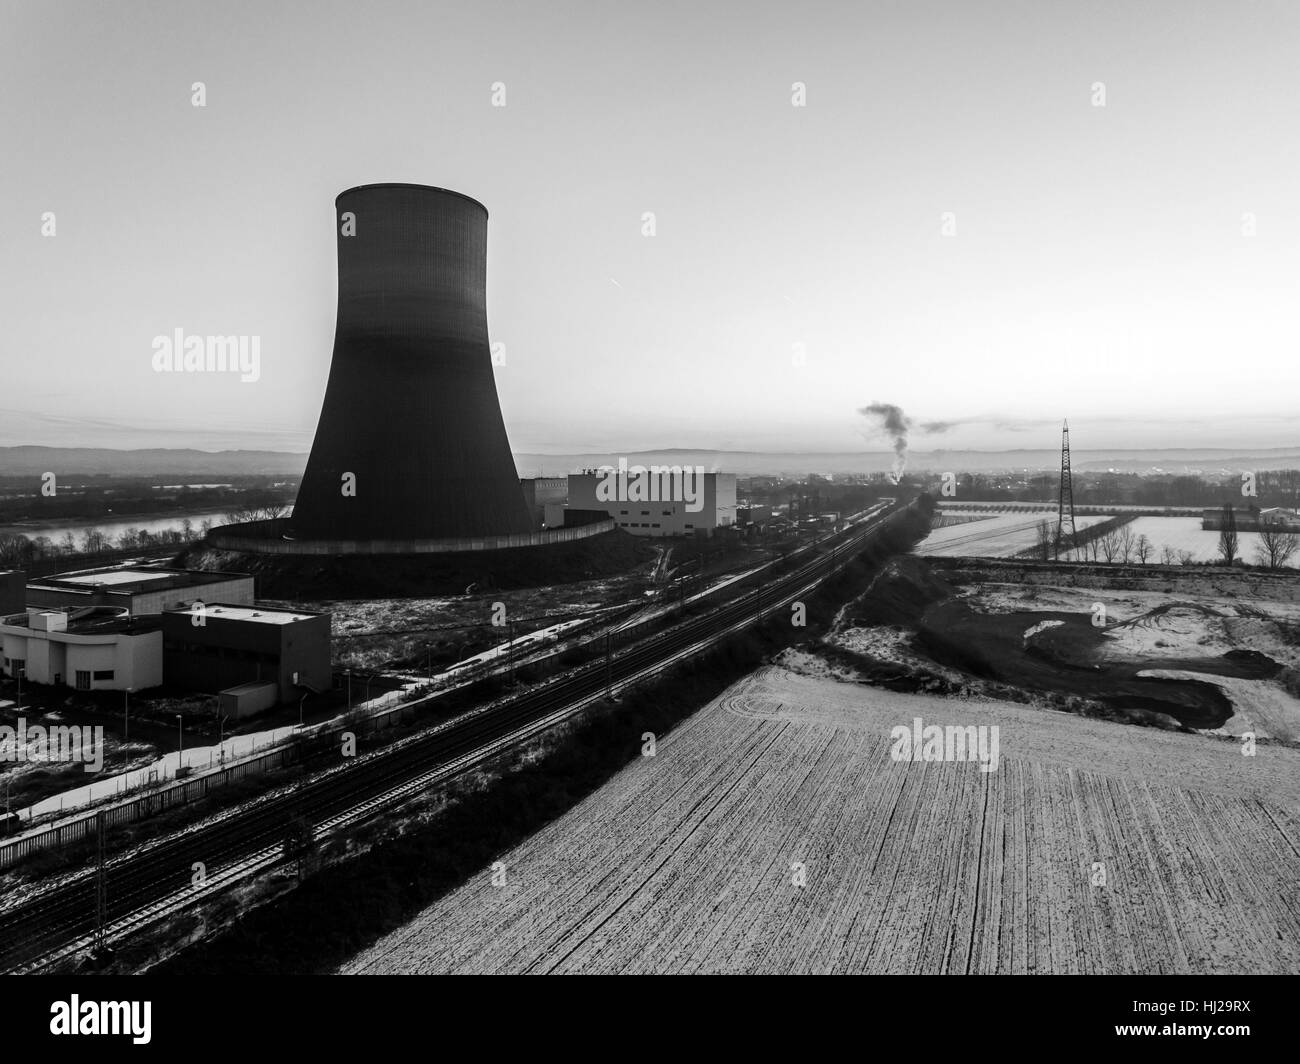 nuclear power plant sunset sunrise dawn black and white Radiation of soil environment - Stock Image